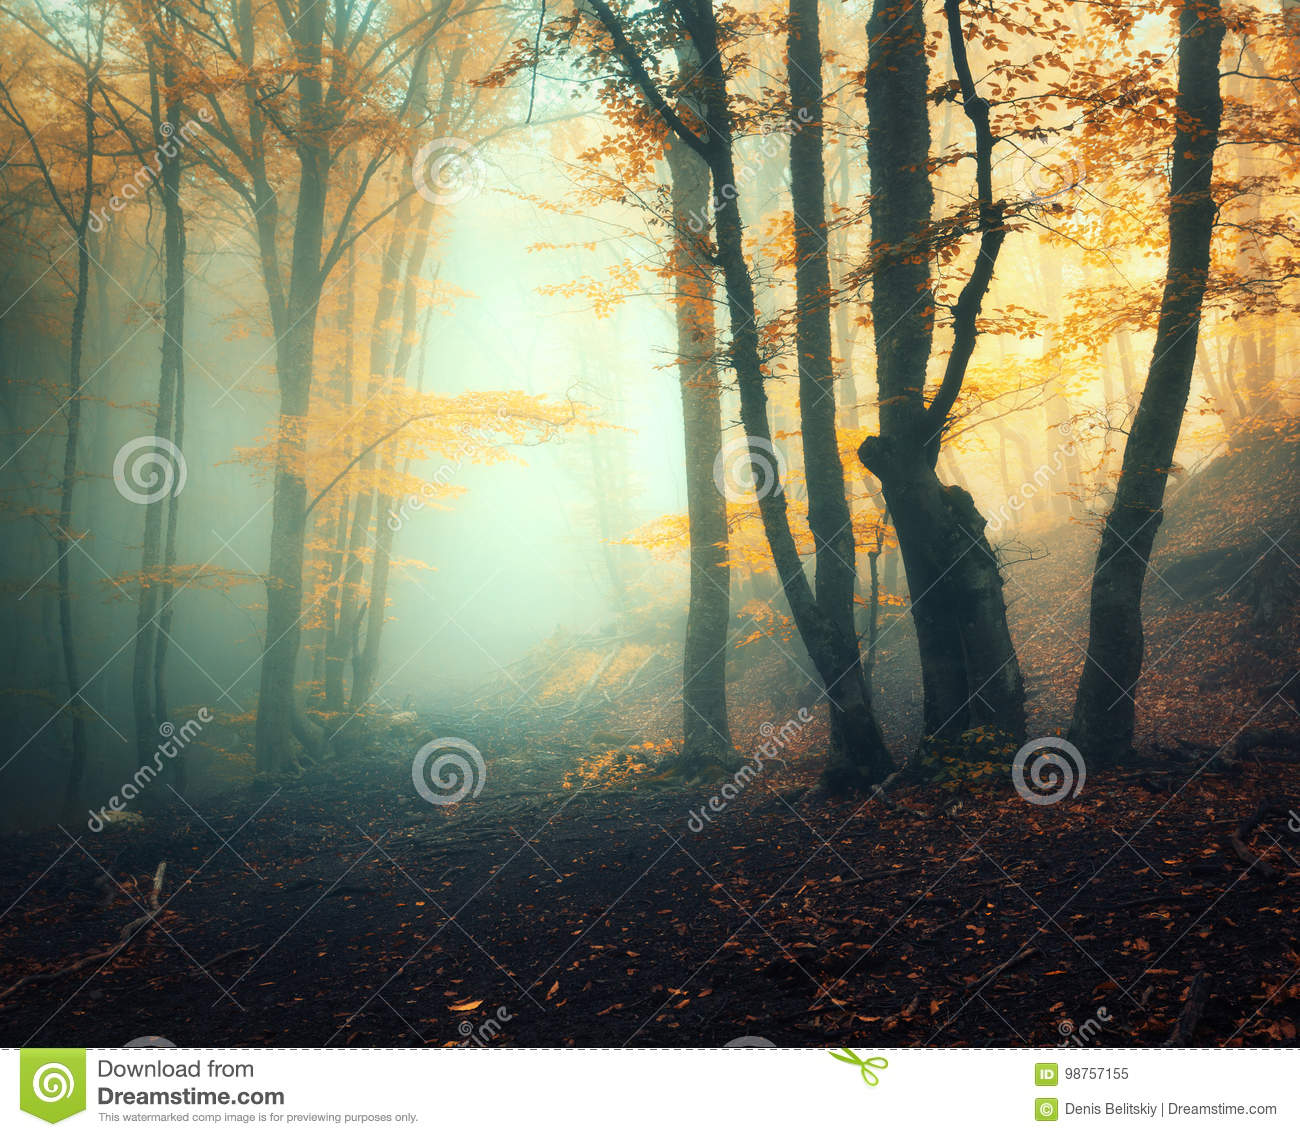 Fairy Forest In Fog Fall Woods Enchanted Autumn The Evening Old Tree Landscape With Trees Colorful Orange Foliage And Green